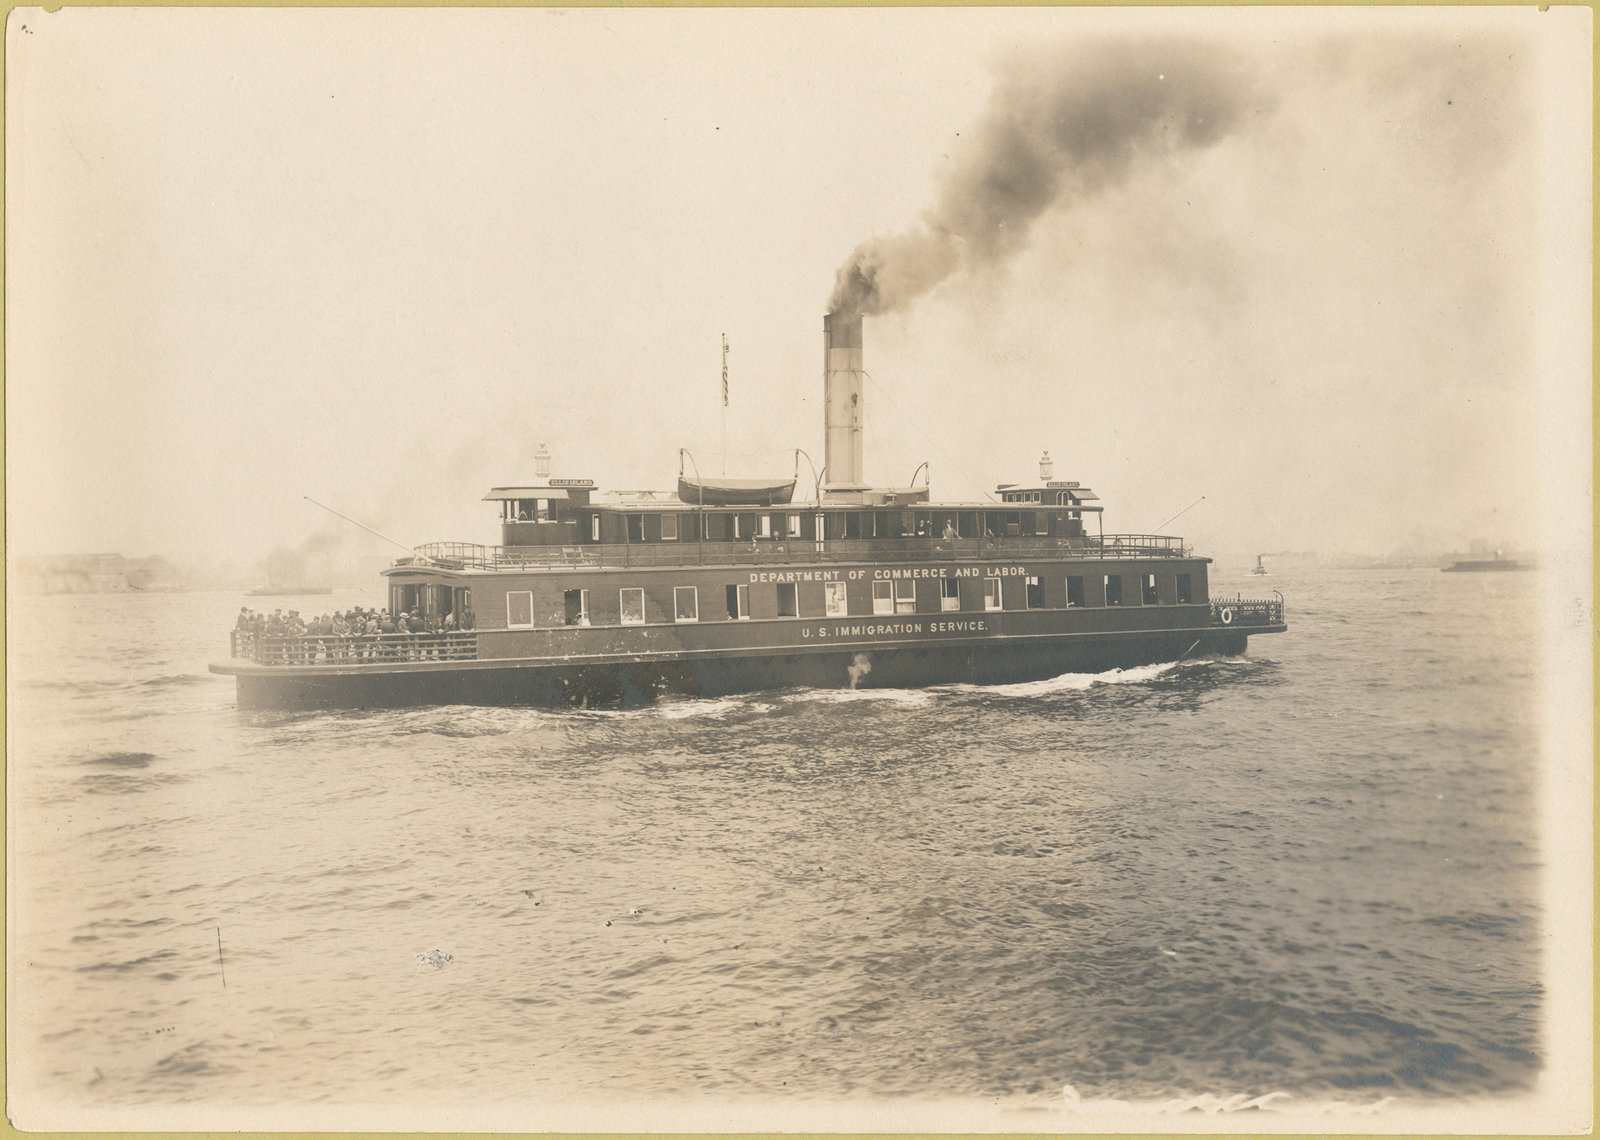 Ferry boat, Ferry boat, the Ellis Island, which is also marked Department of Commerce and Labor, U.S. Immigration Service. 1902 - 1913, NYPL Digital Gallery A calendar of the William Williams collection of photographs of Ellis Island., Public Domain Mark